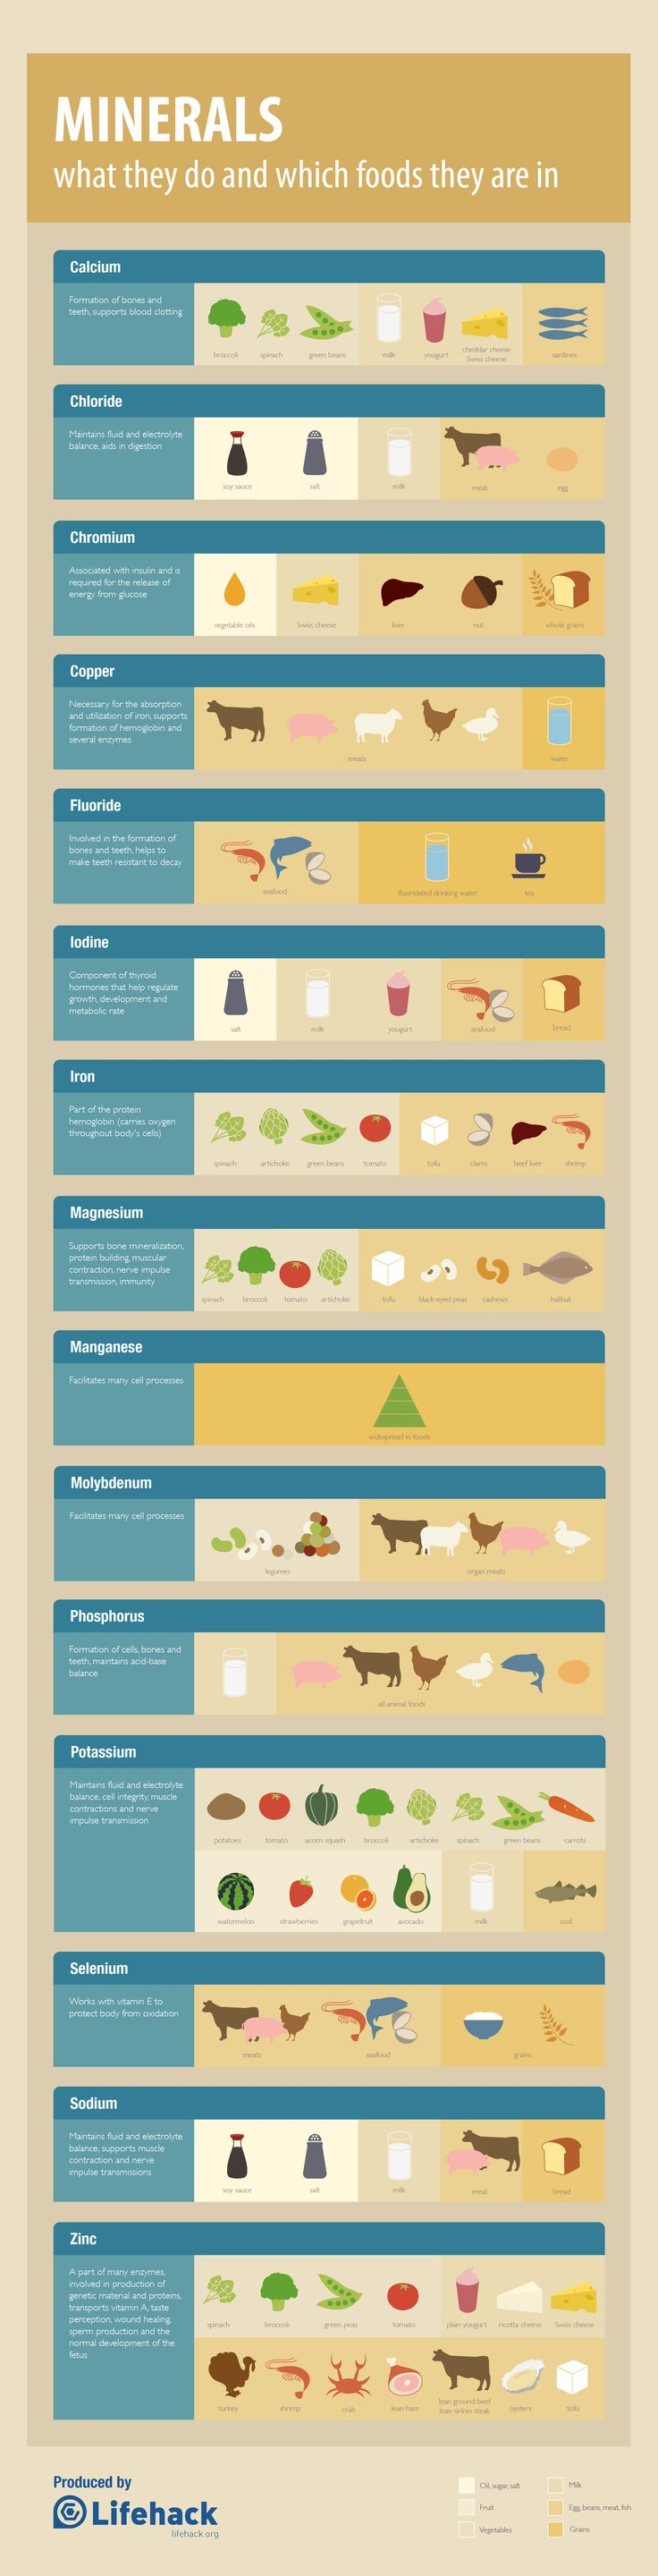 Great Infographic on minerals: what they do/which foods they r in